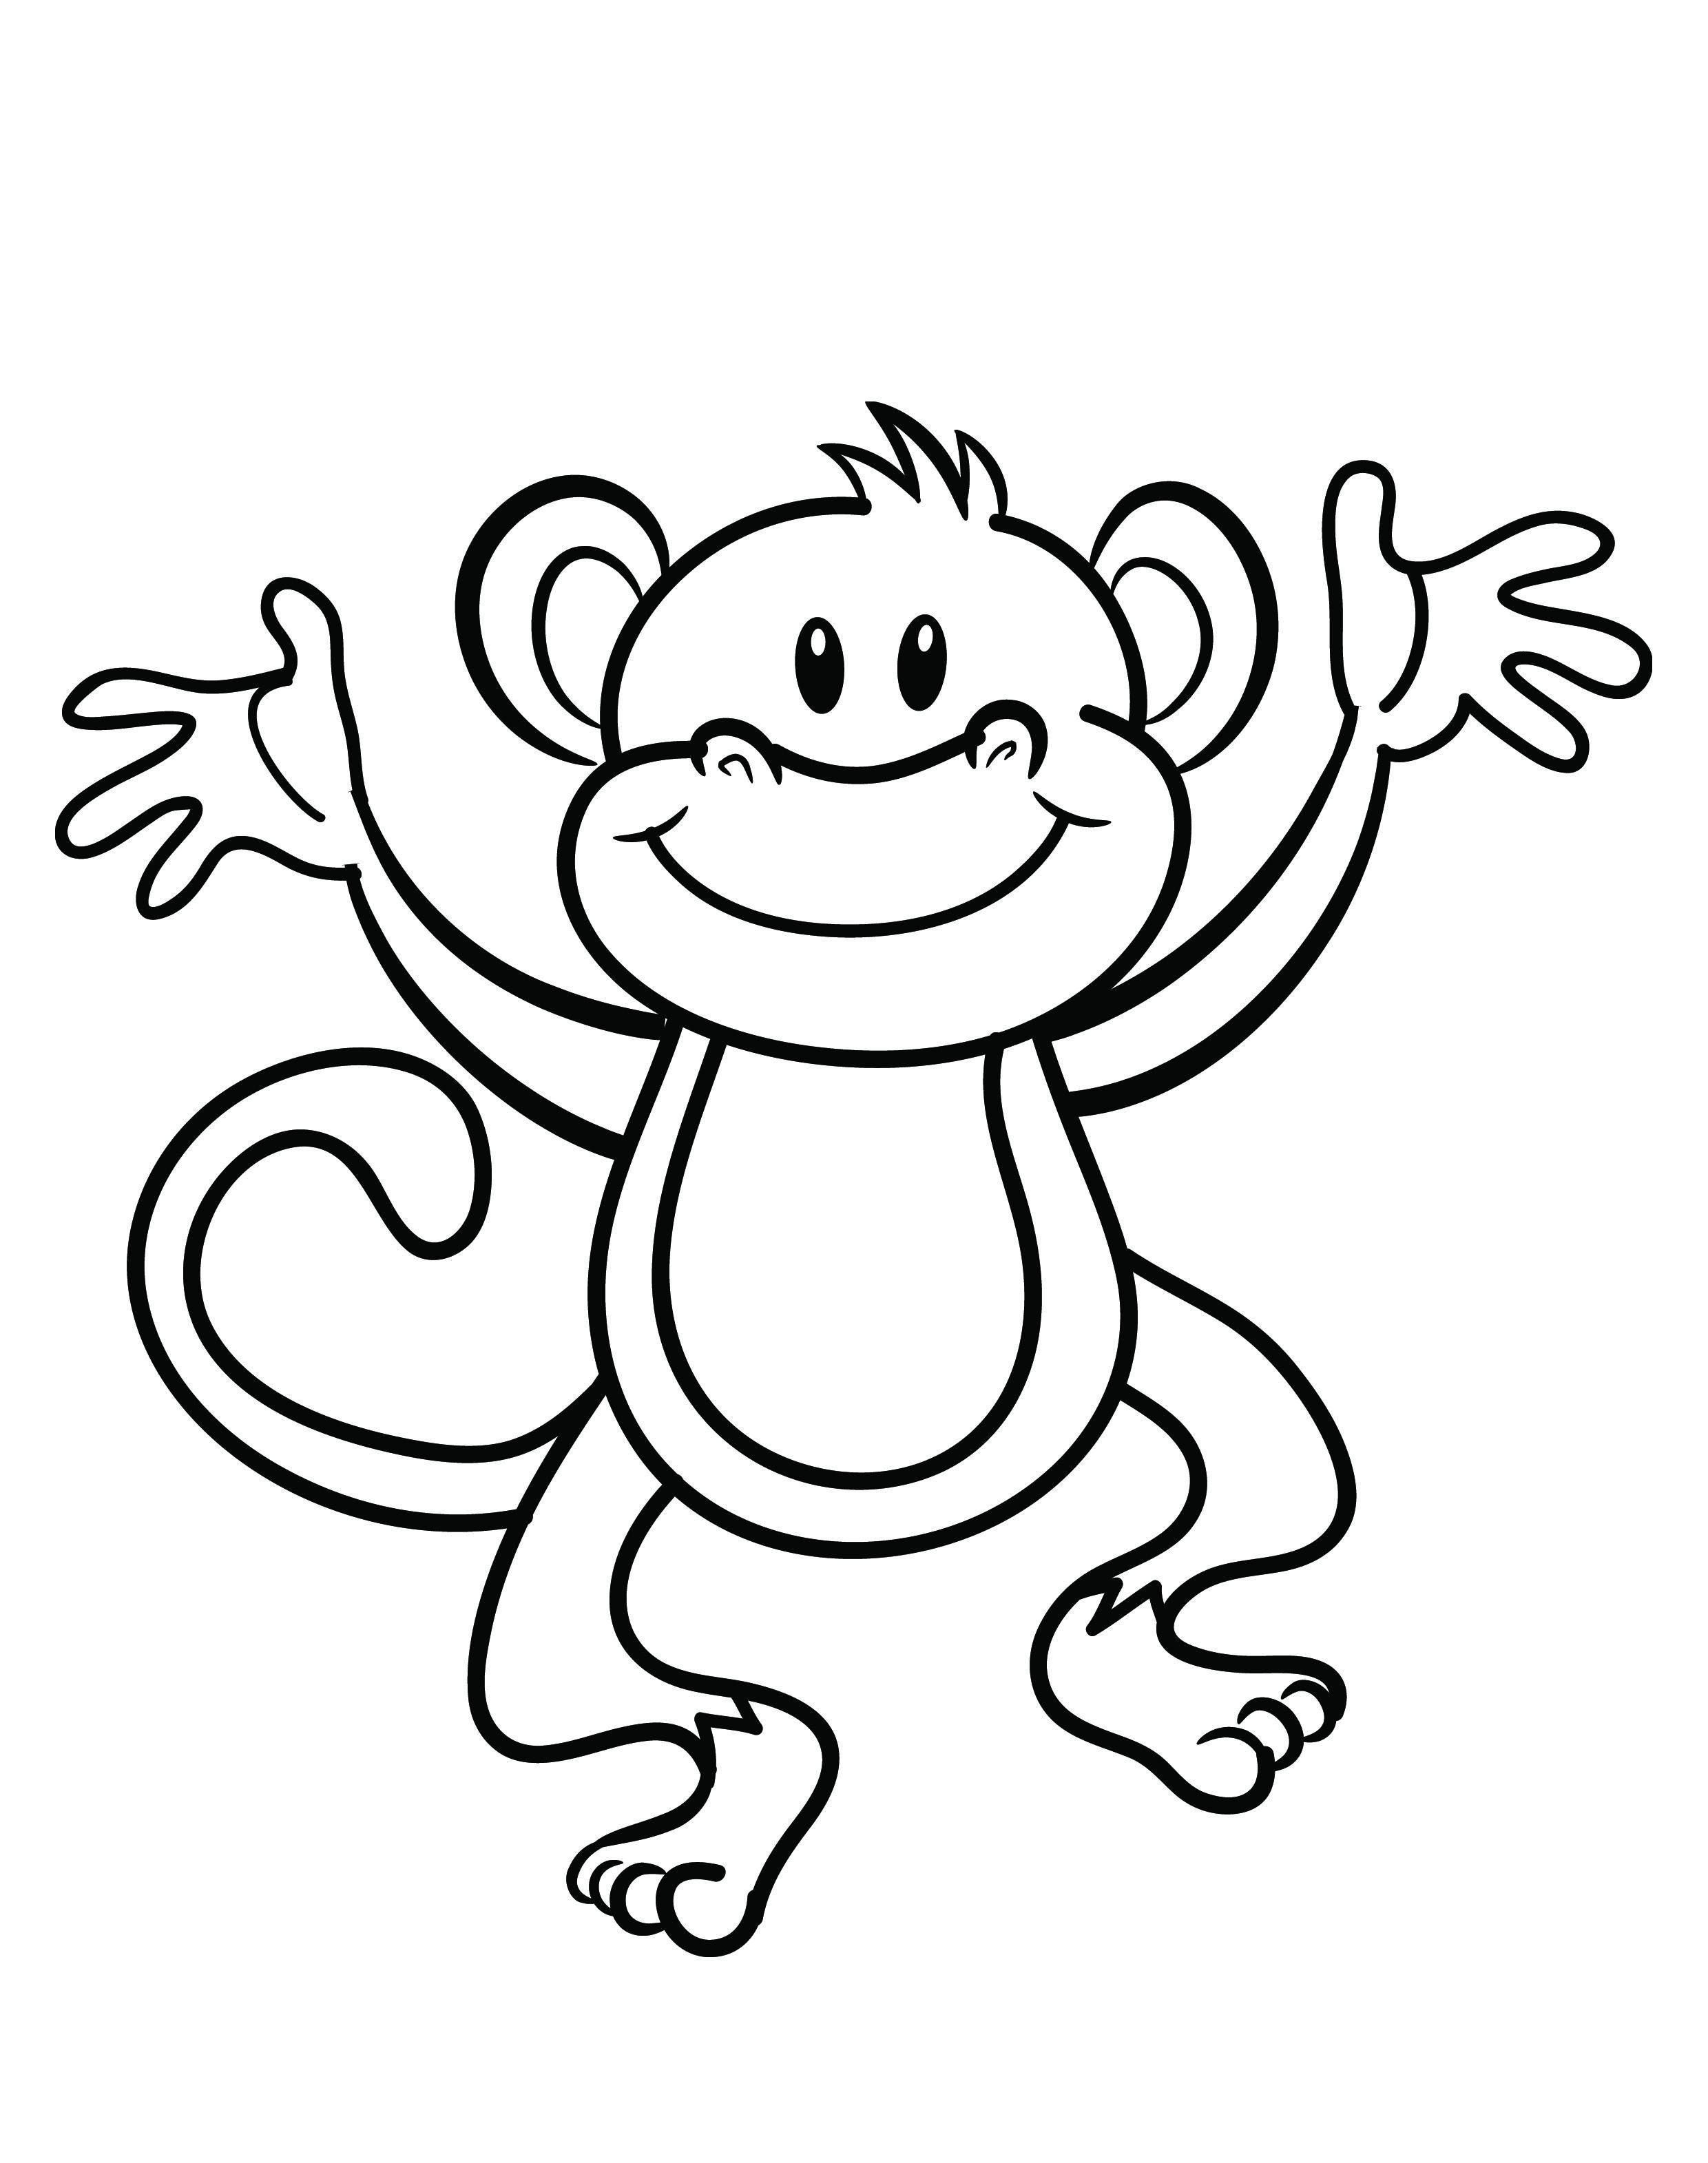 photo relating to Printable Monkey called Cost-free printable monkey coloring web page cj 1st birthday